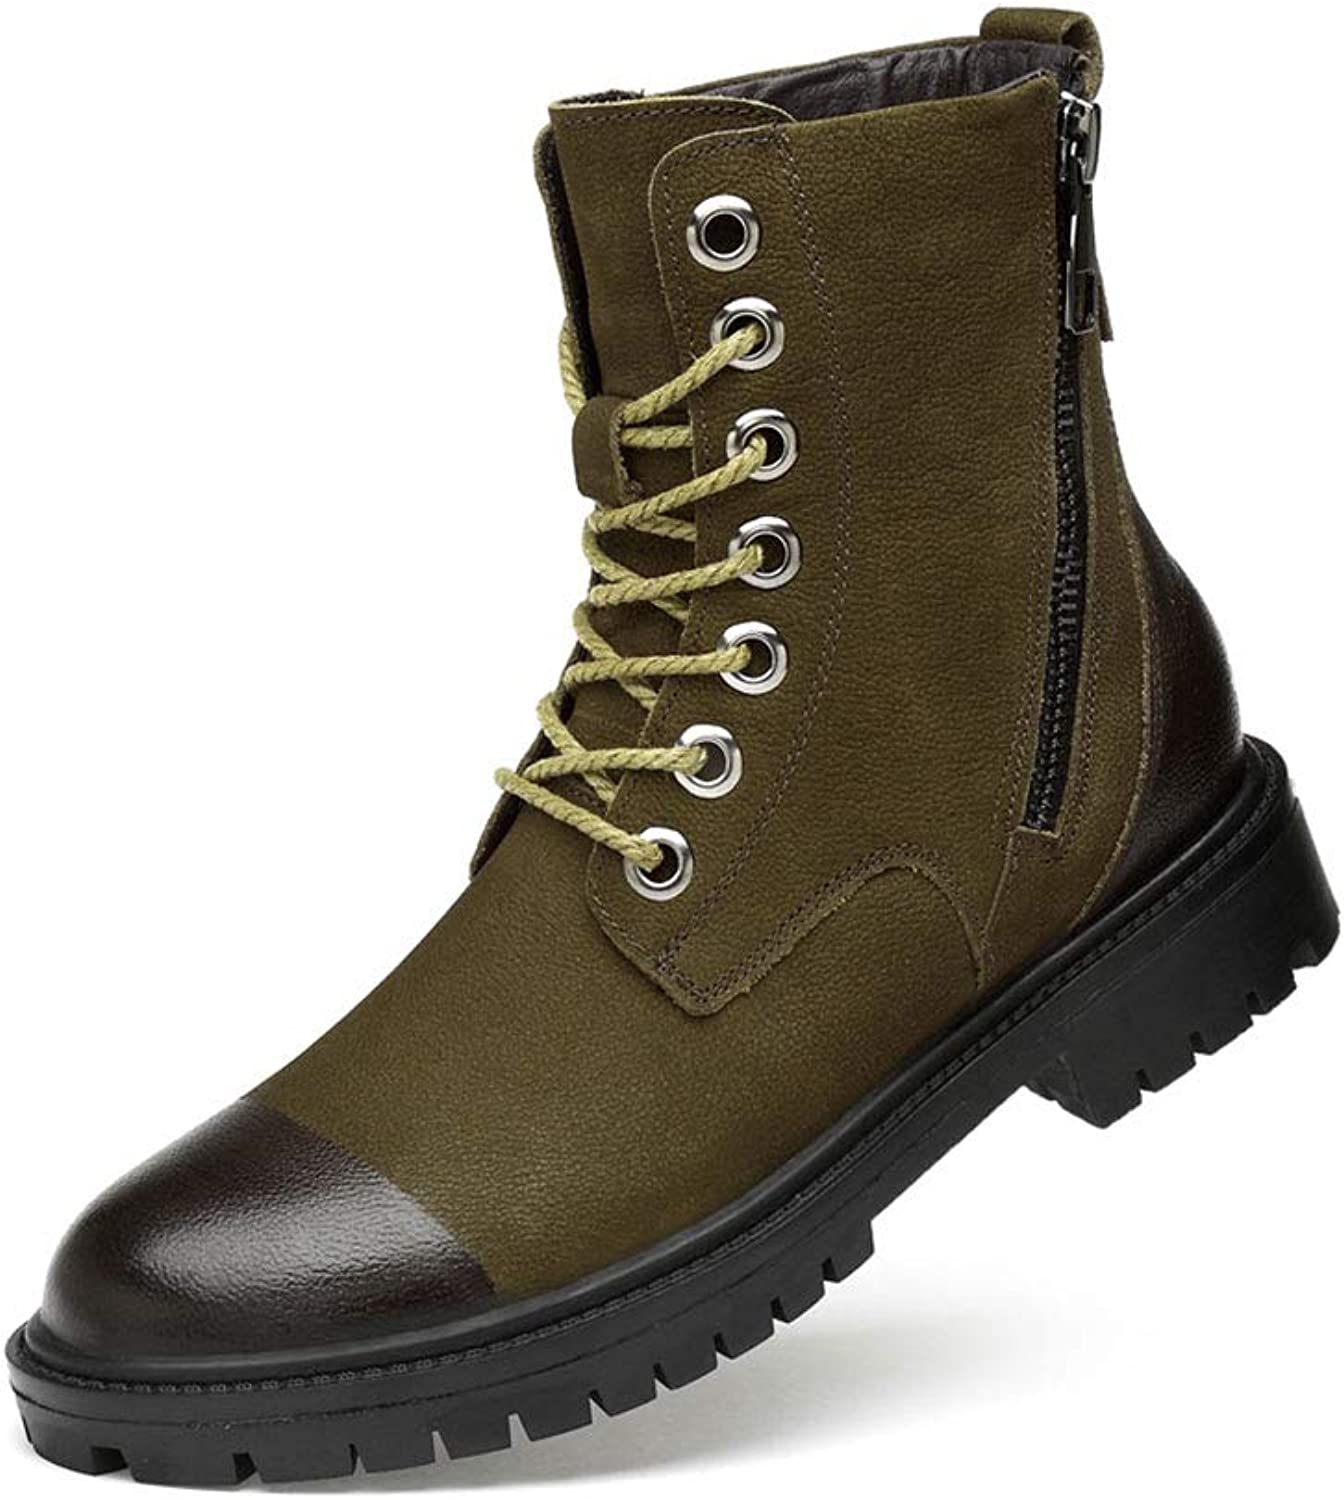 Walking Boots Winter Snow Boots Warm Mens Waterproof shoes Fully Fur Lined Anti Slip Rubber Sole